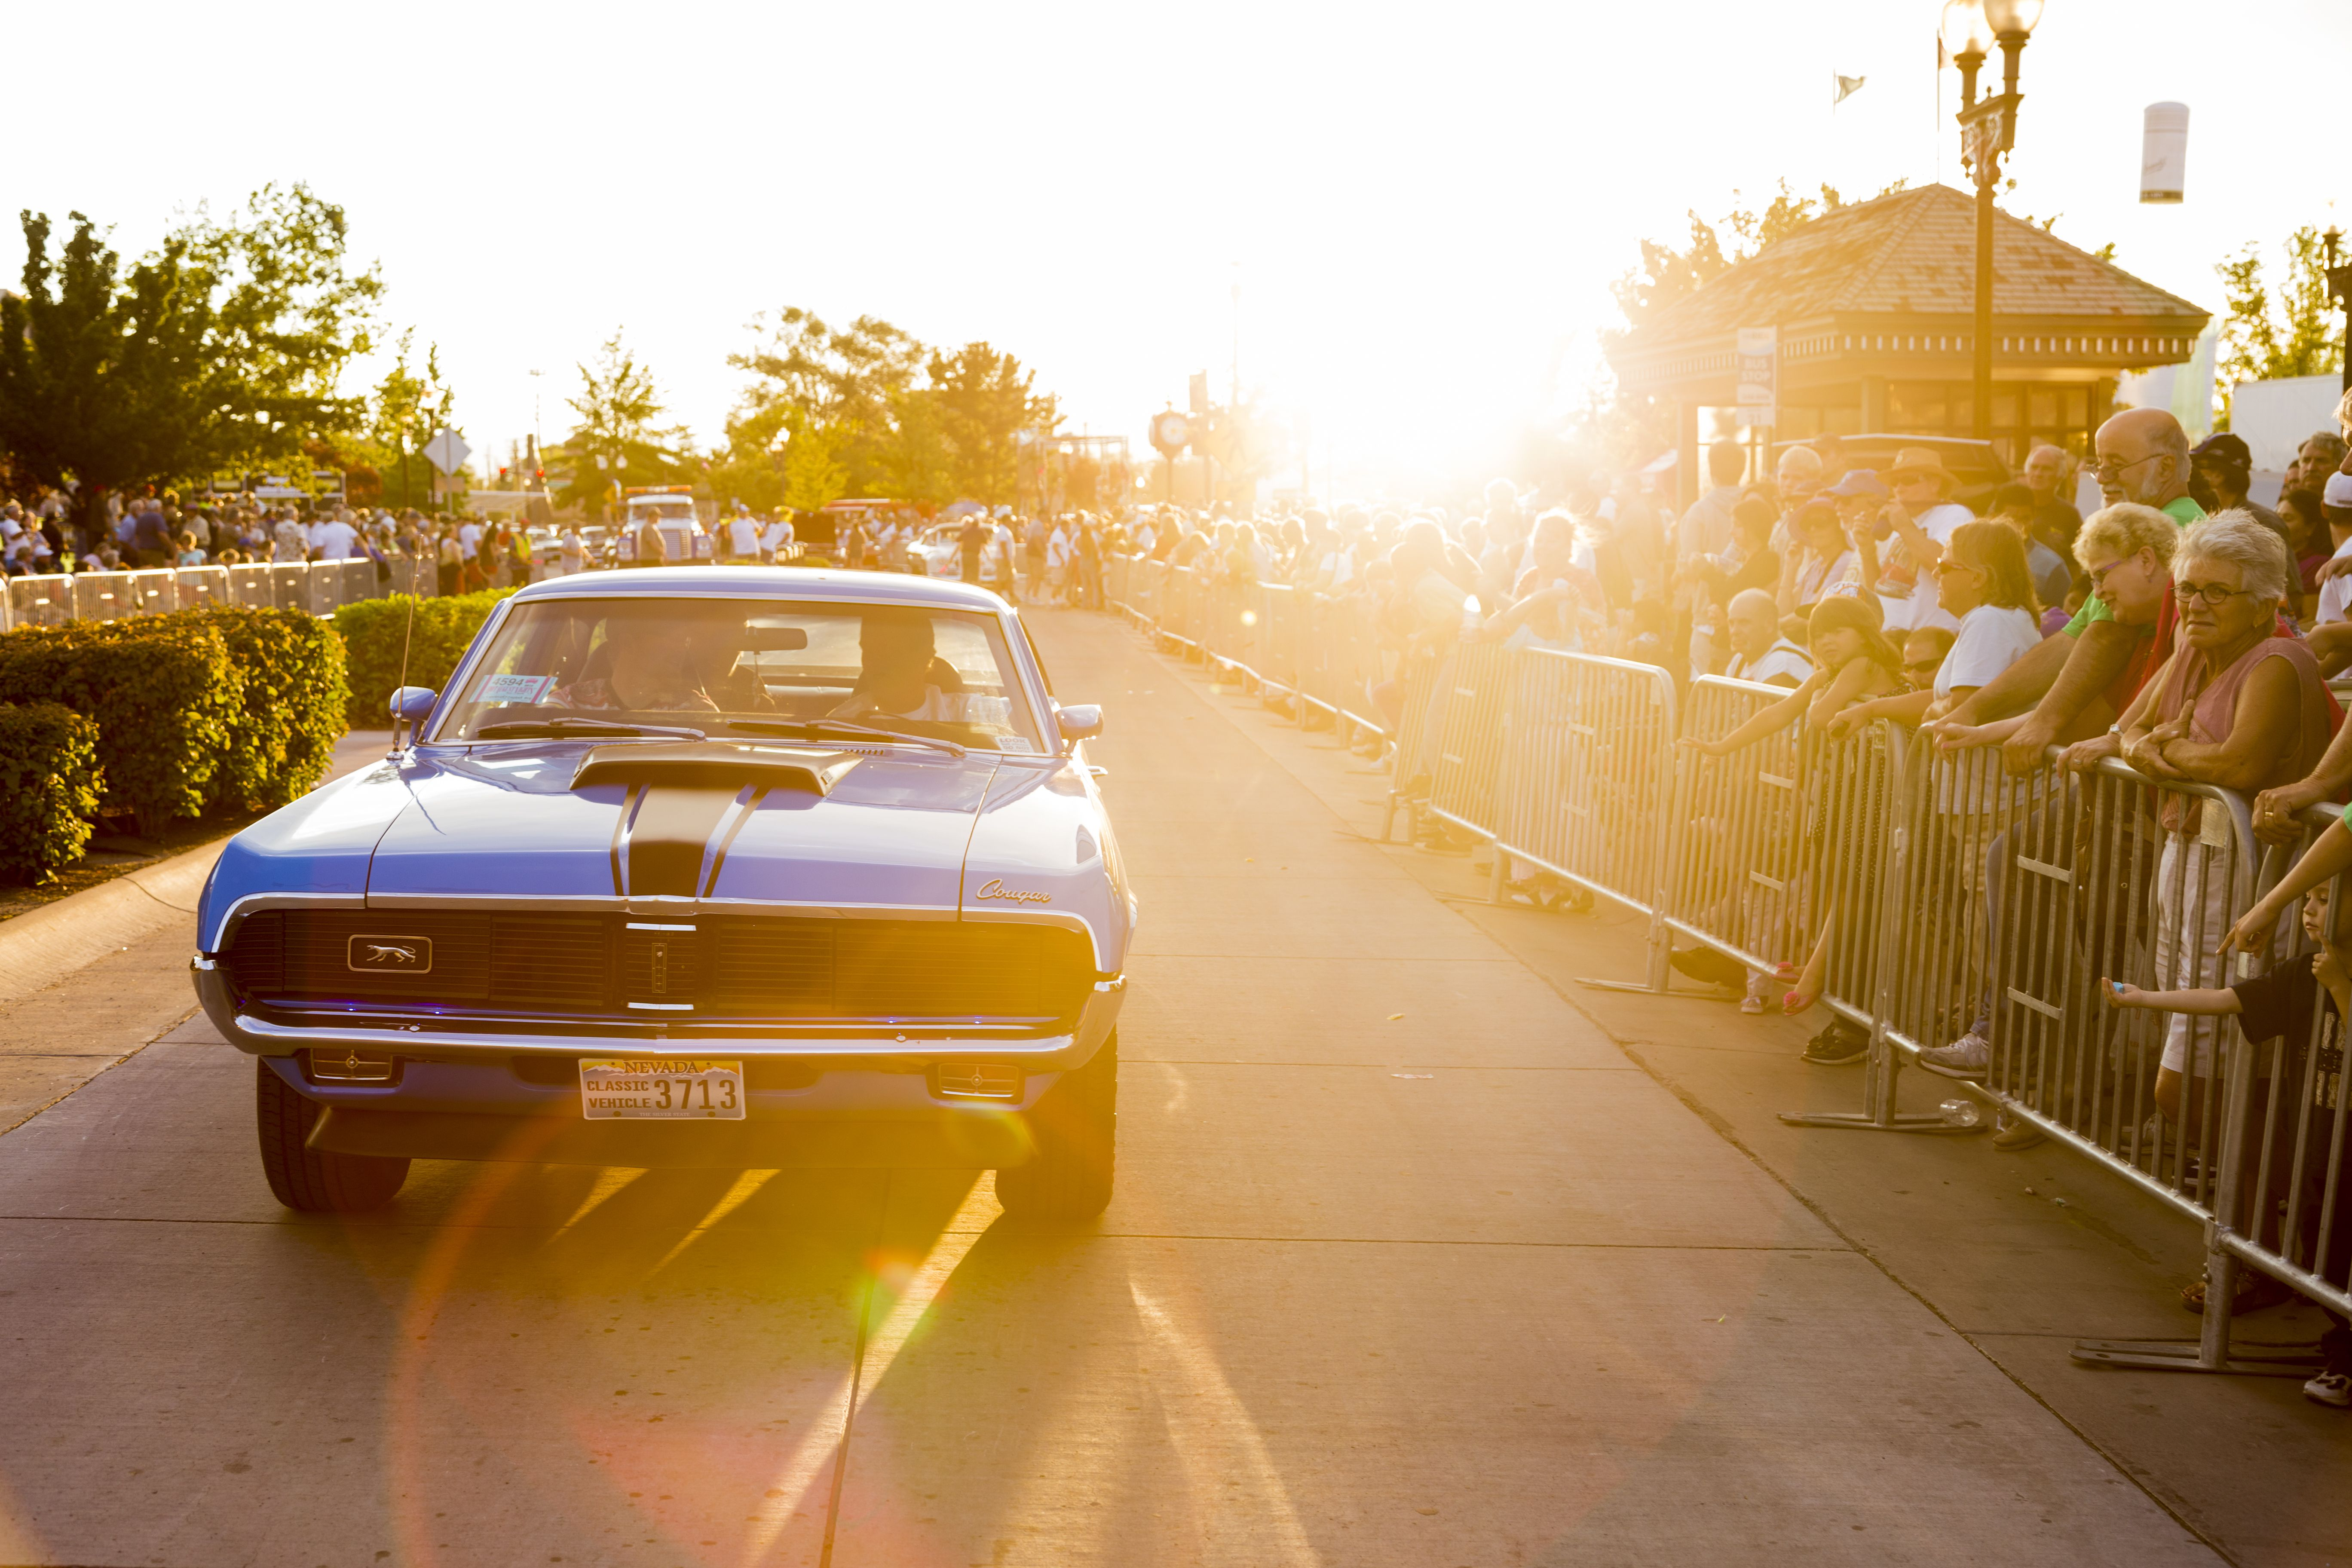 Hot August Nights Cruise in Sparks Nevada